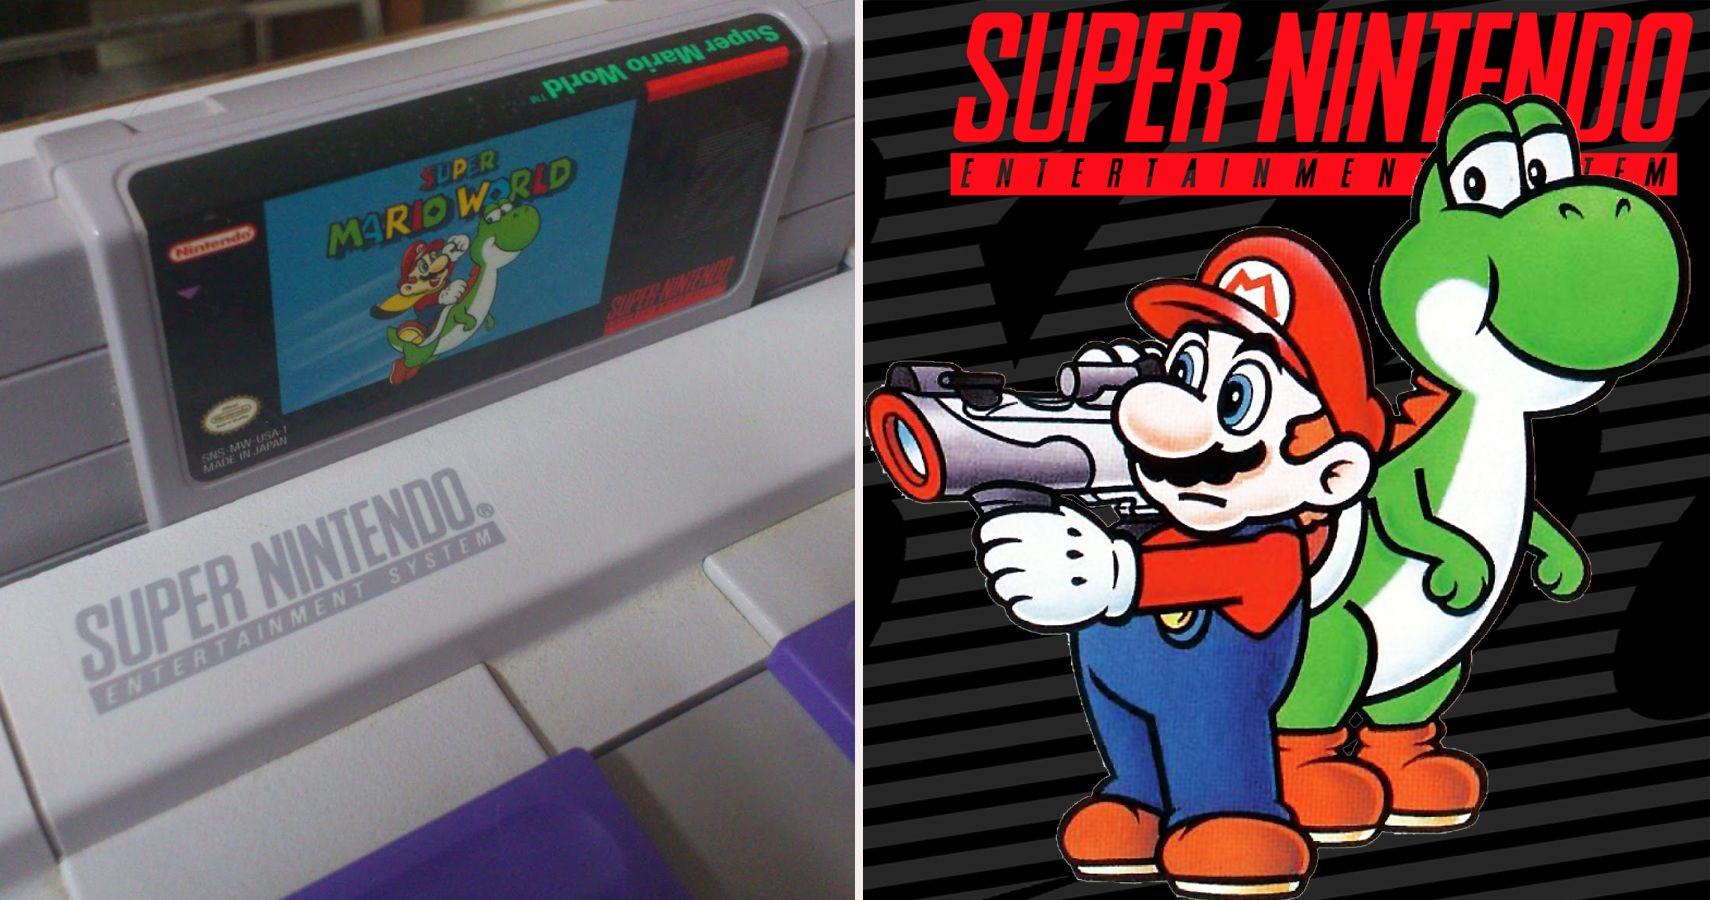 25 Awesome Facts About The Super Nintendo Only True Fans Know